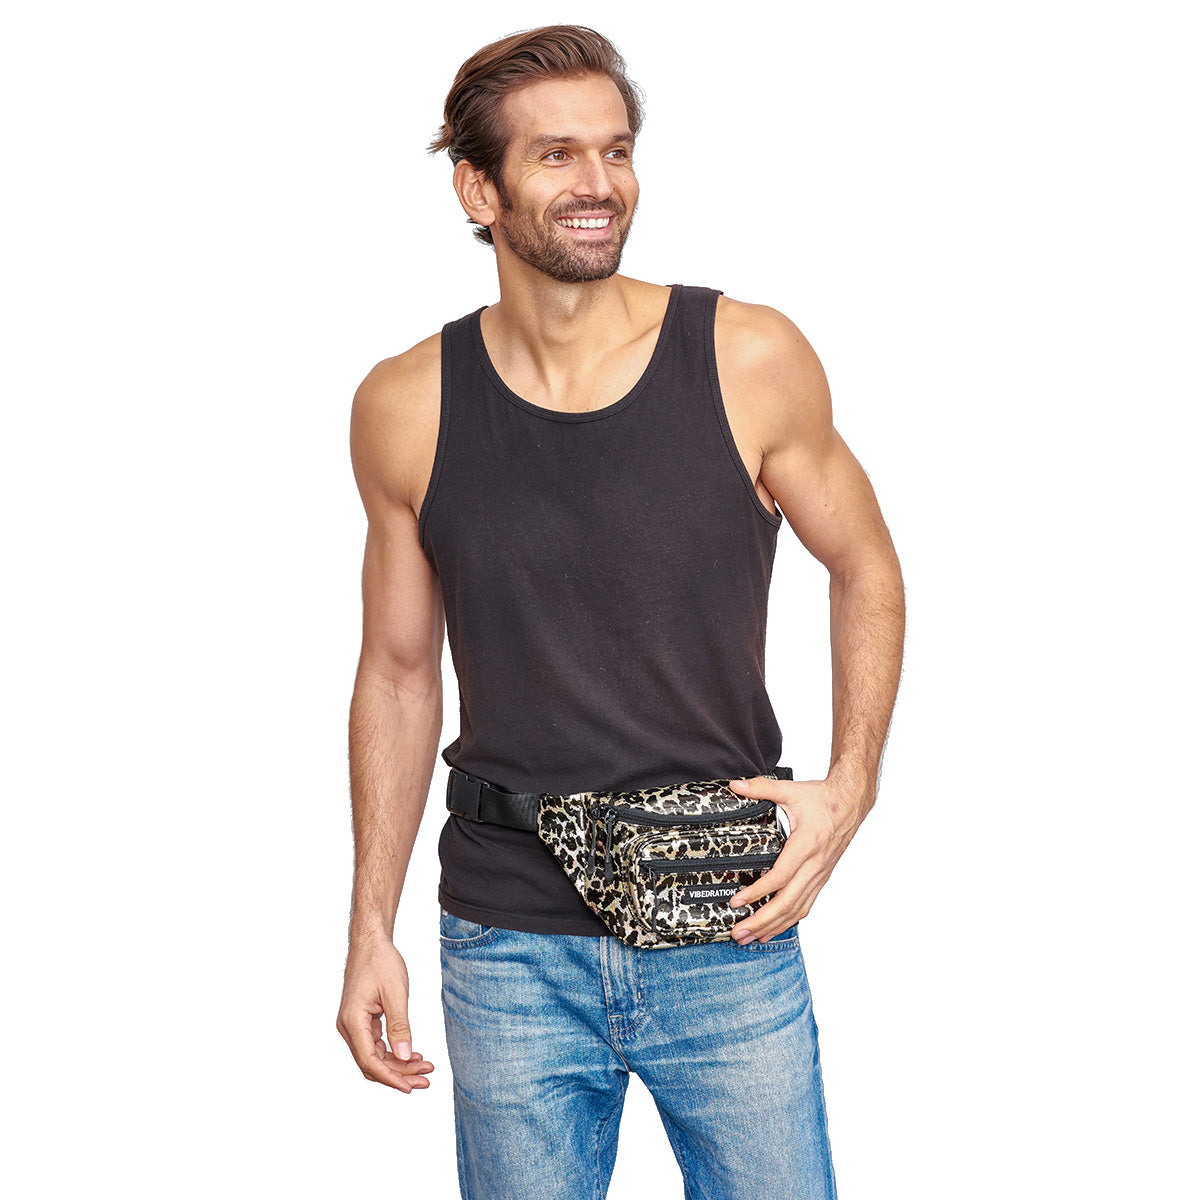 male wearing gold and black fanny pack